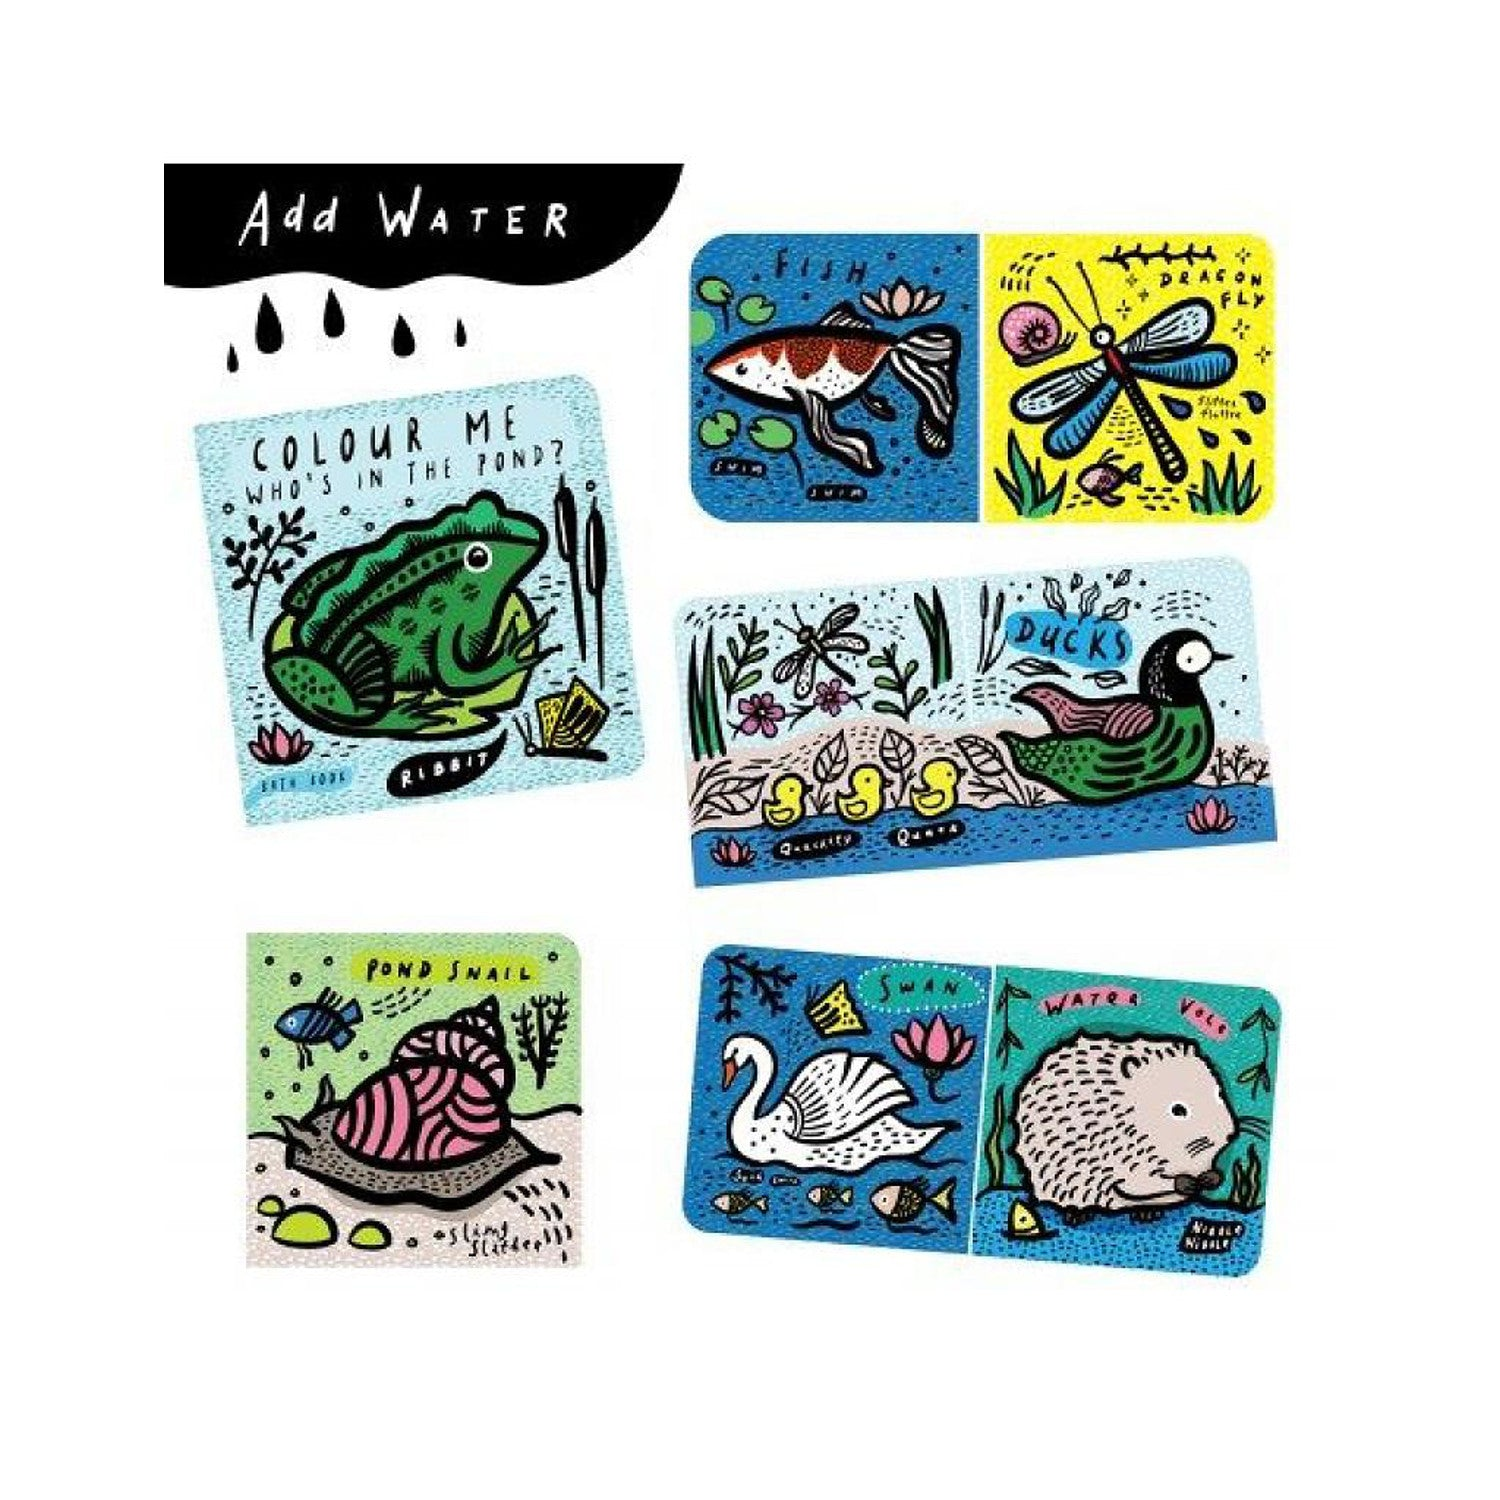 Wee Gallery Bath Book Colour Me! -Who\'s in the pond? - Monkey Kids